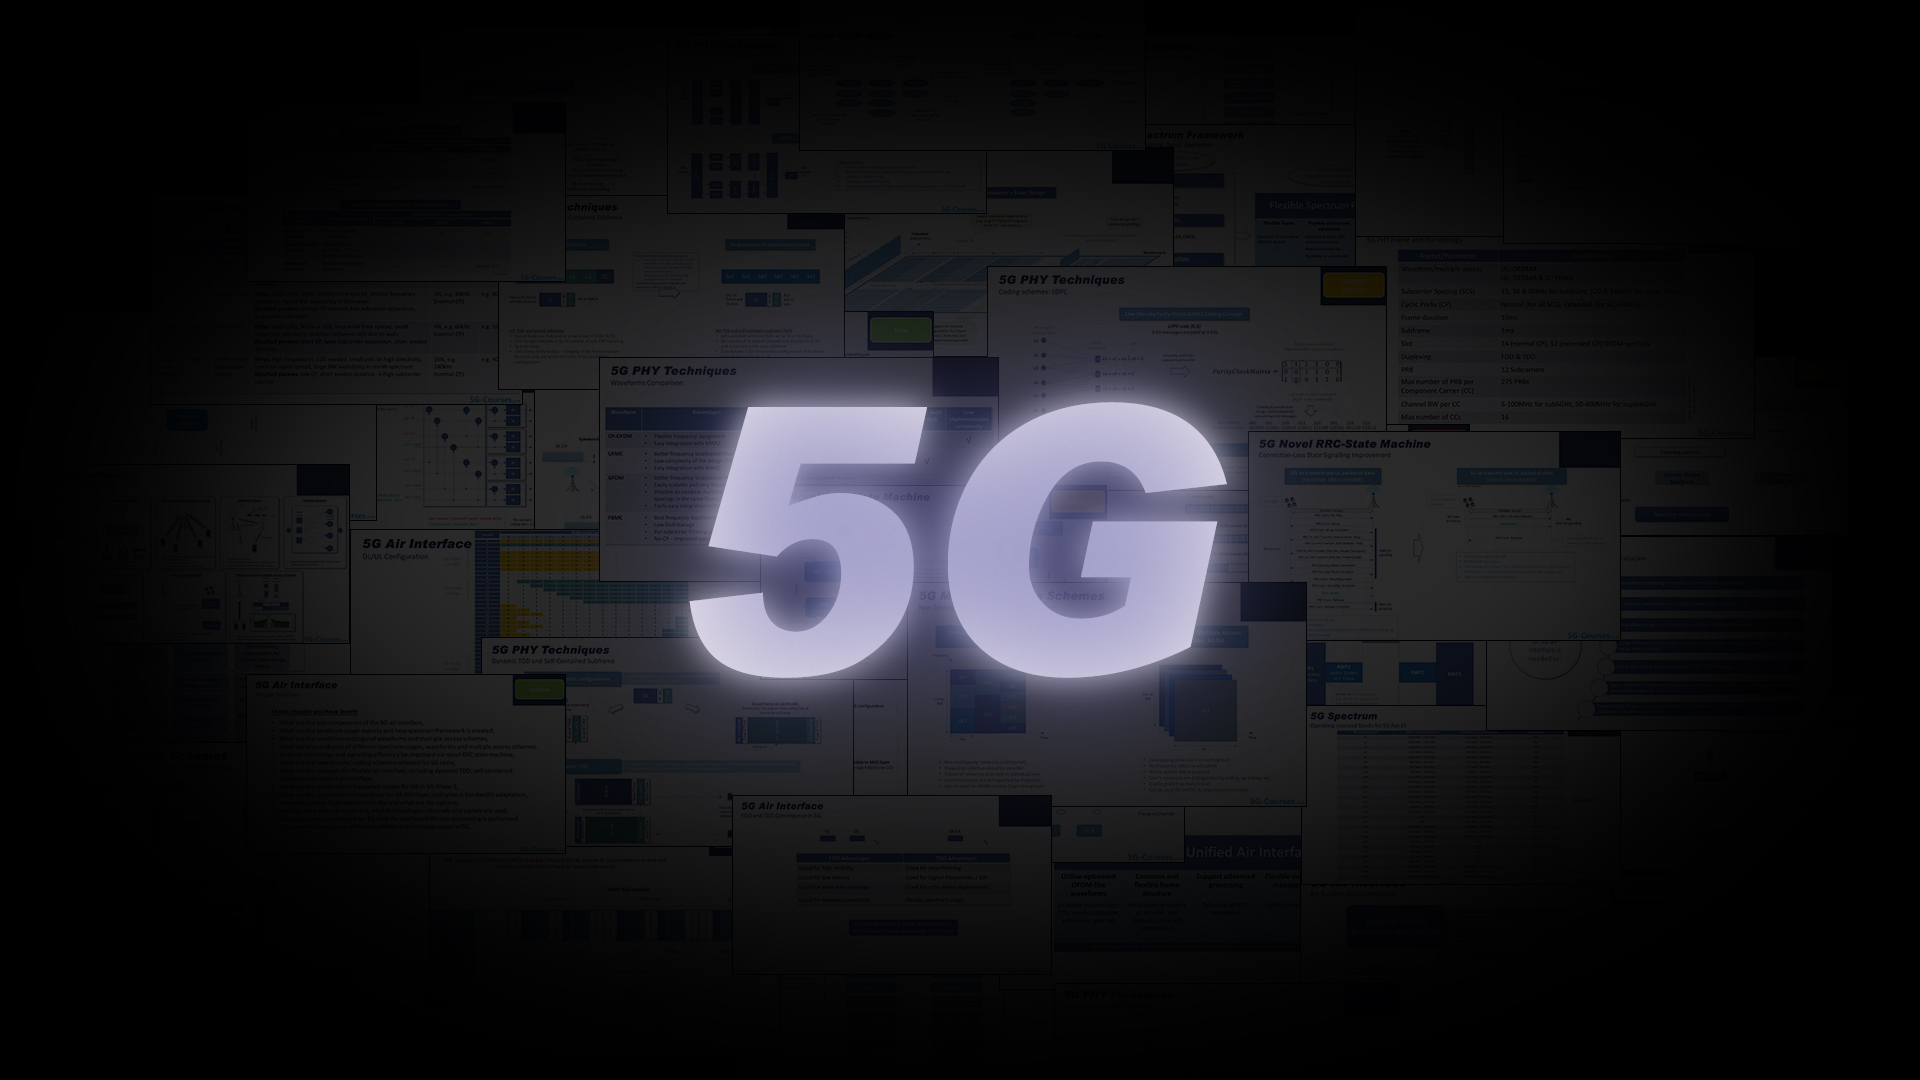 Starting with 5G?